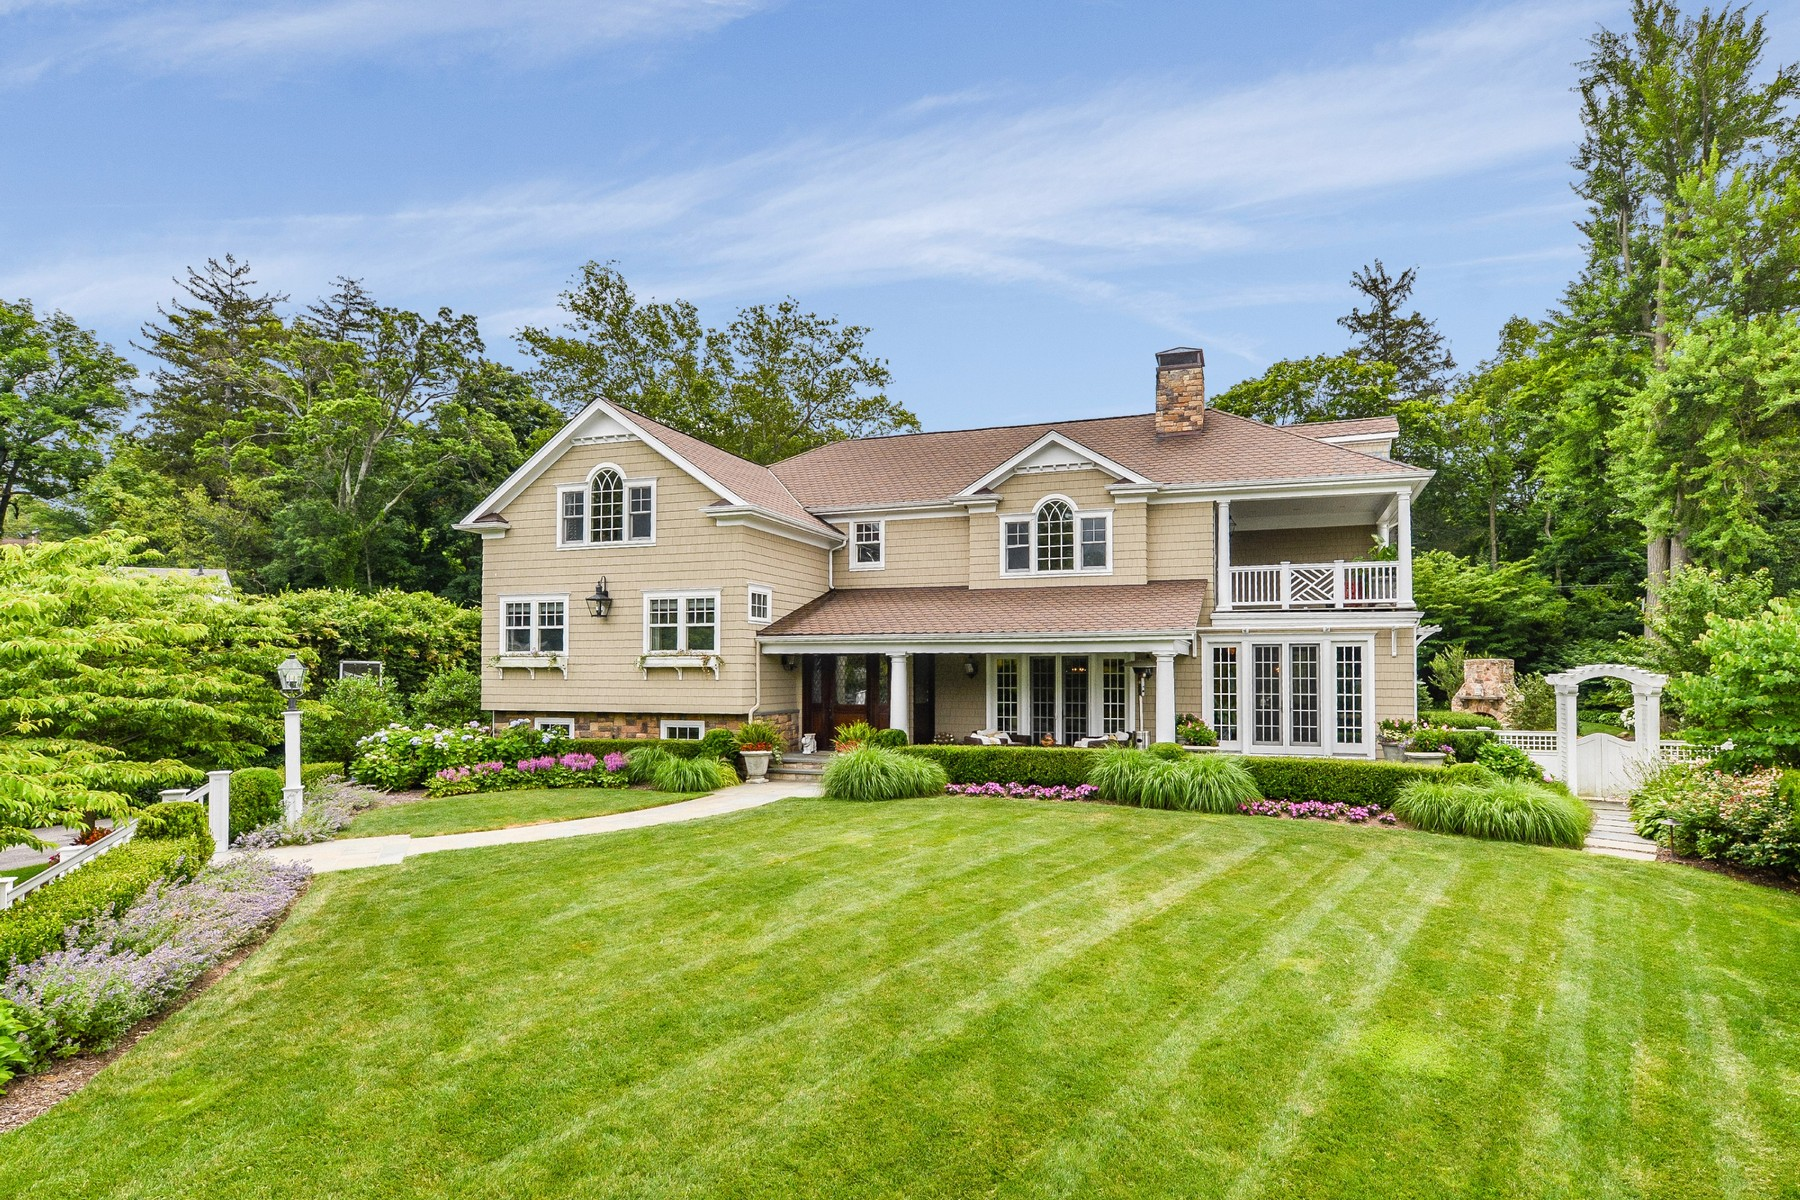 Single Family Home for Sale at Water View Colonial on 1/3 Acre 3 Gulls Cove Manhasset, New York, 11030 United States